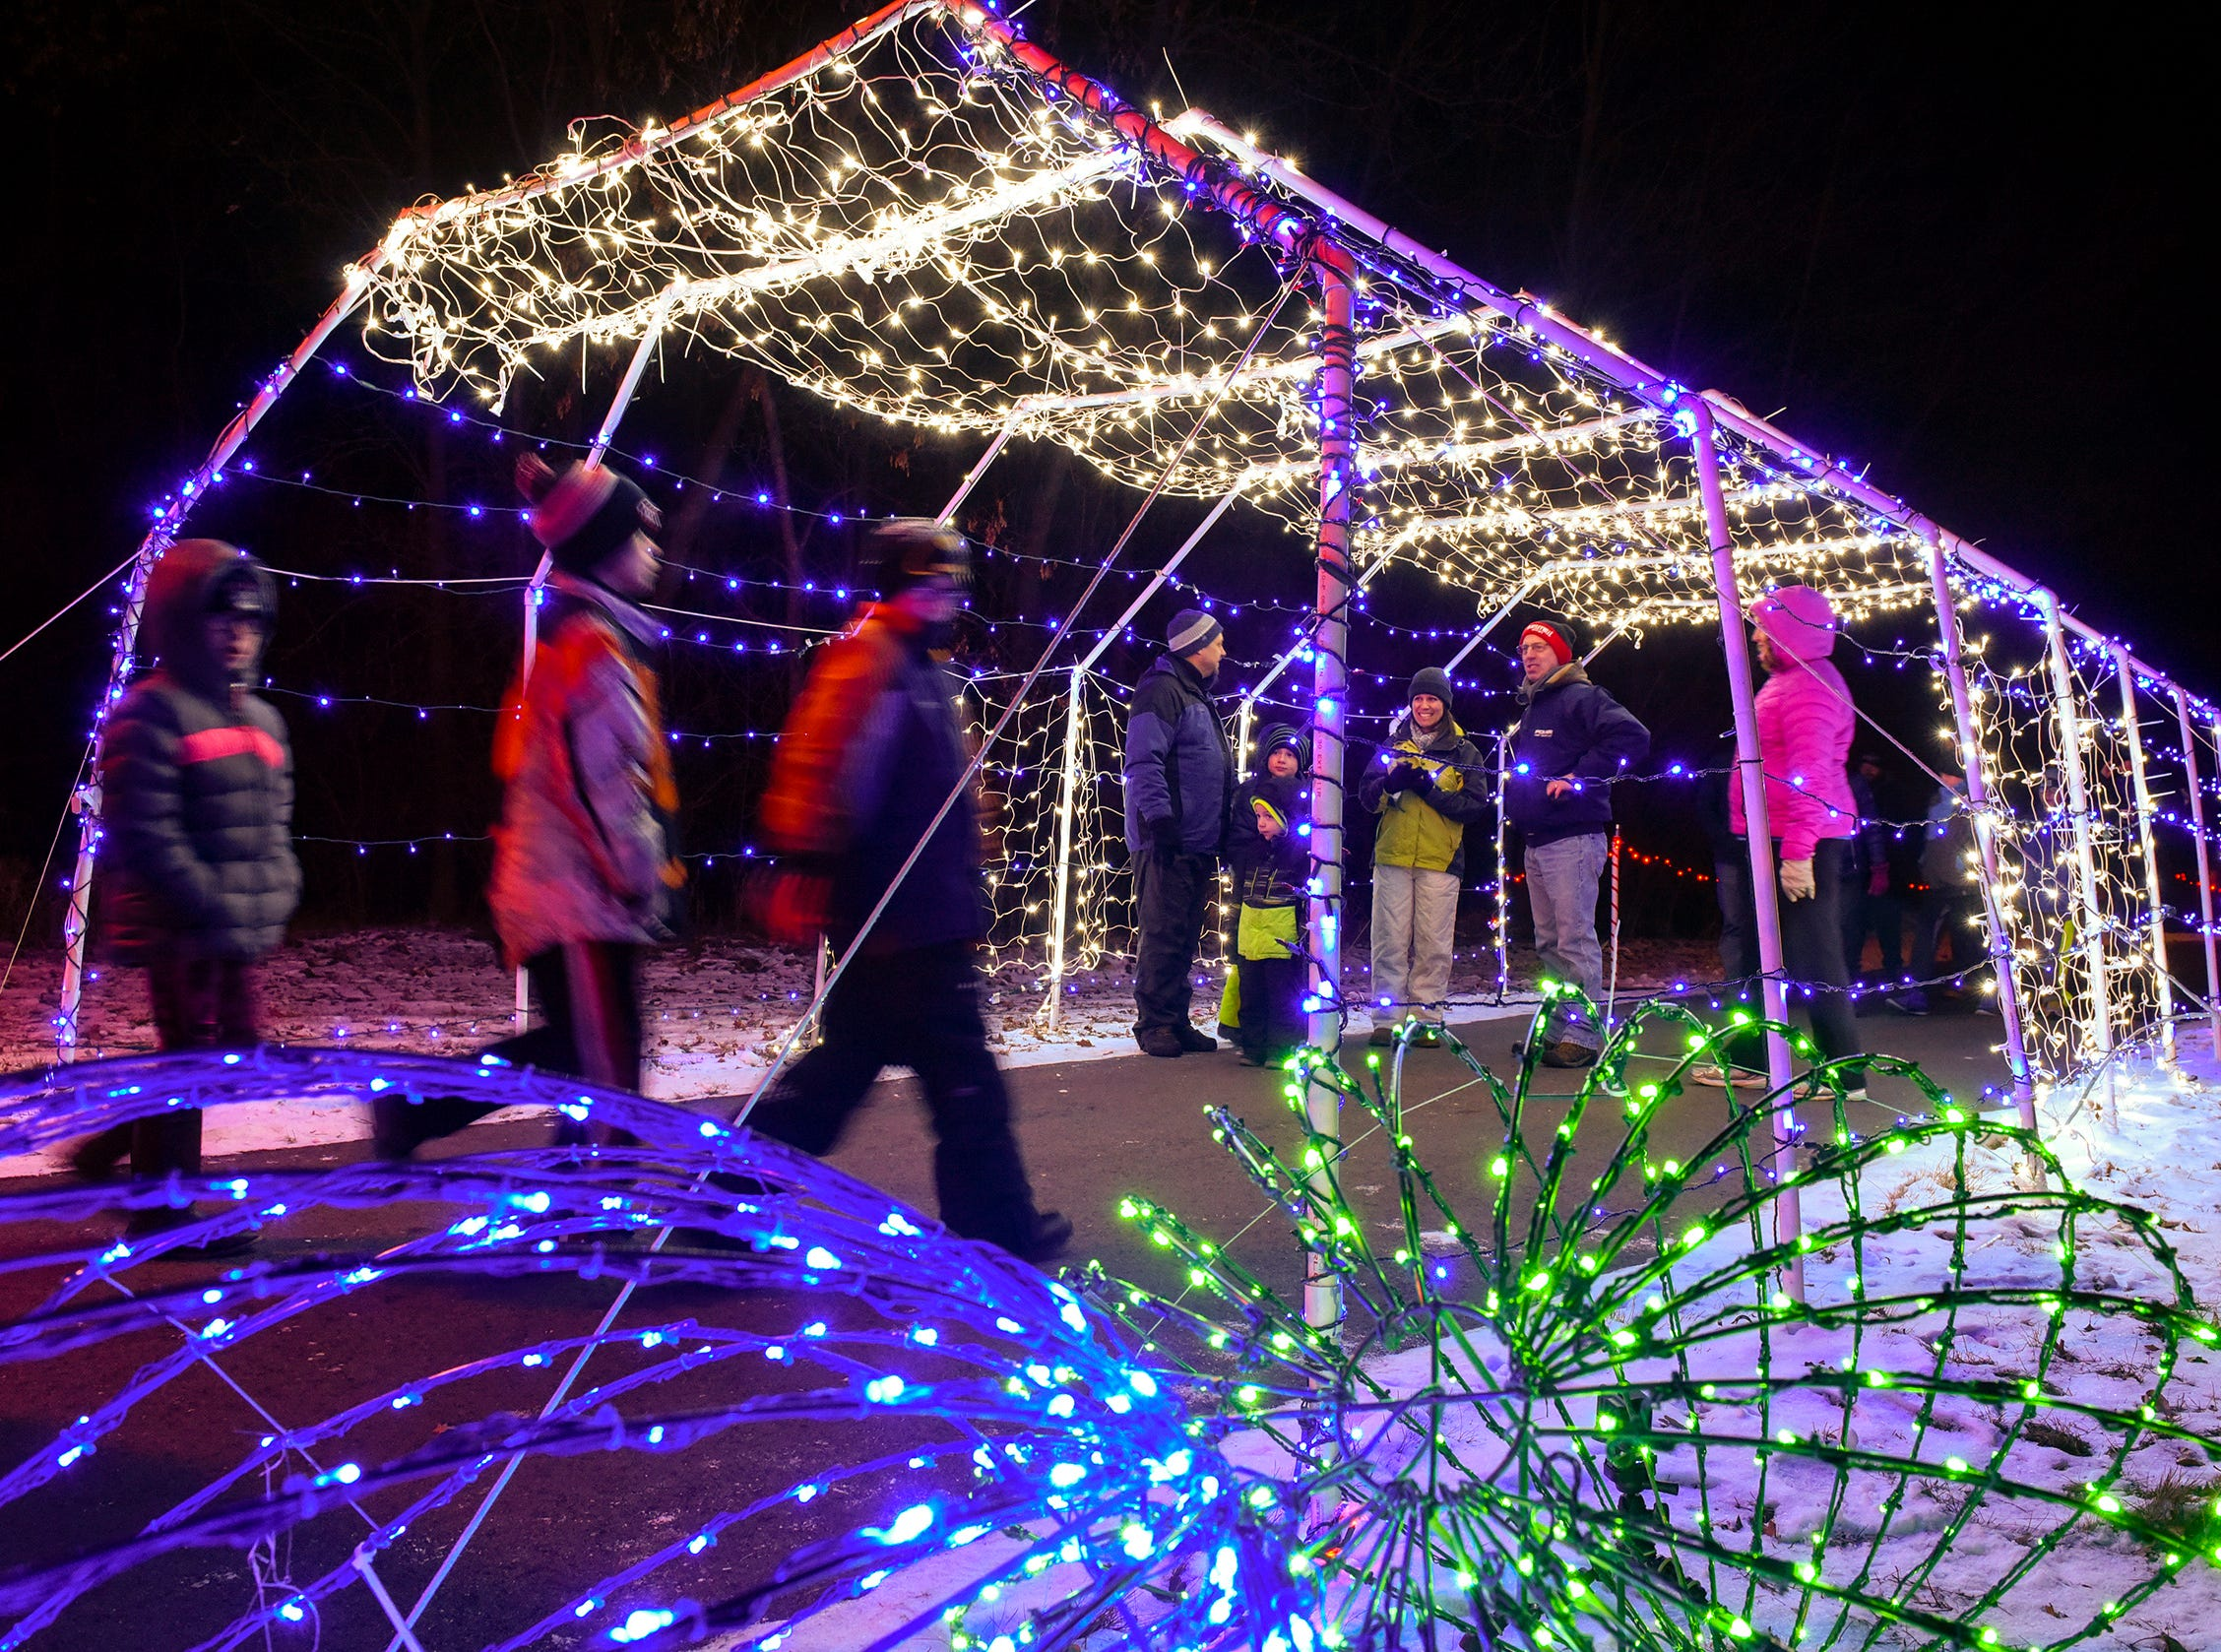 A steady stream of people arrive for the Country Lights Festival Friday, Dec. 7, in Sartell. The lighted trail circles Lake Francis Park behind the Sartell Community Center.